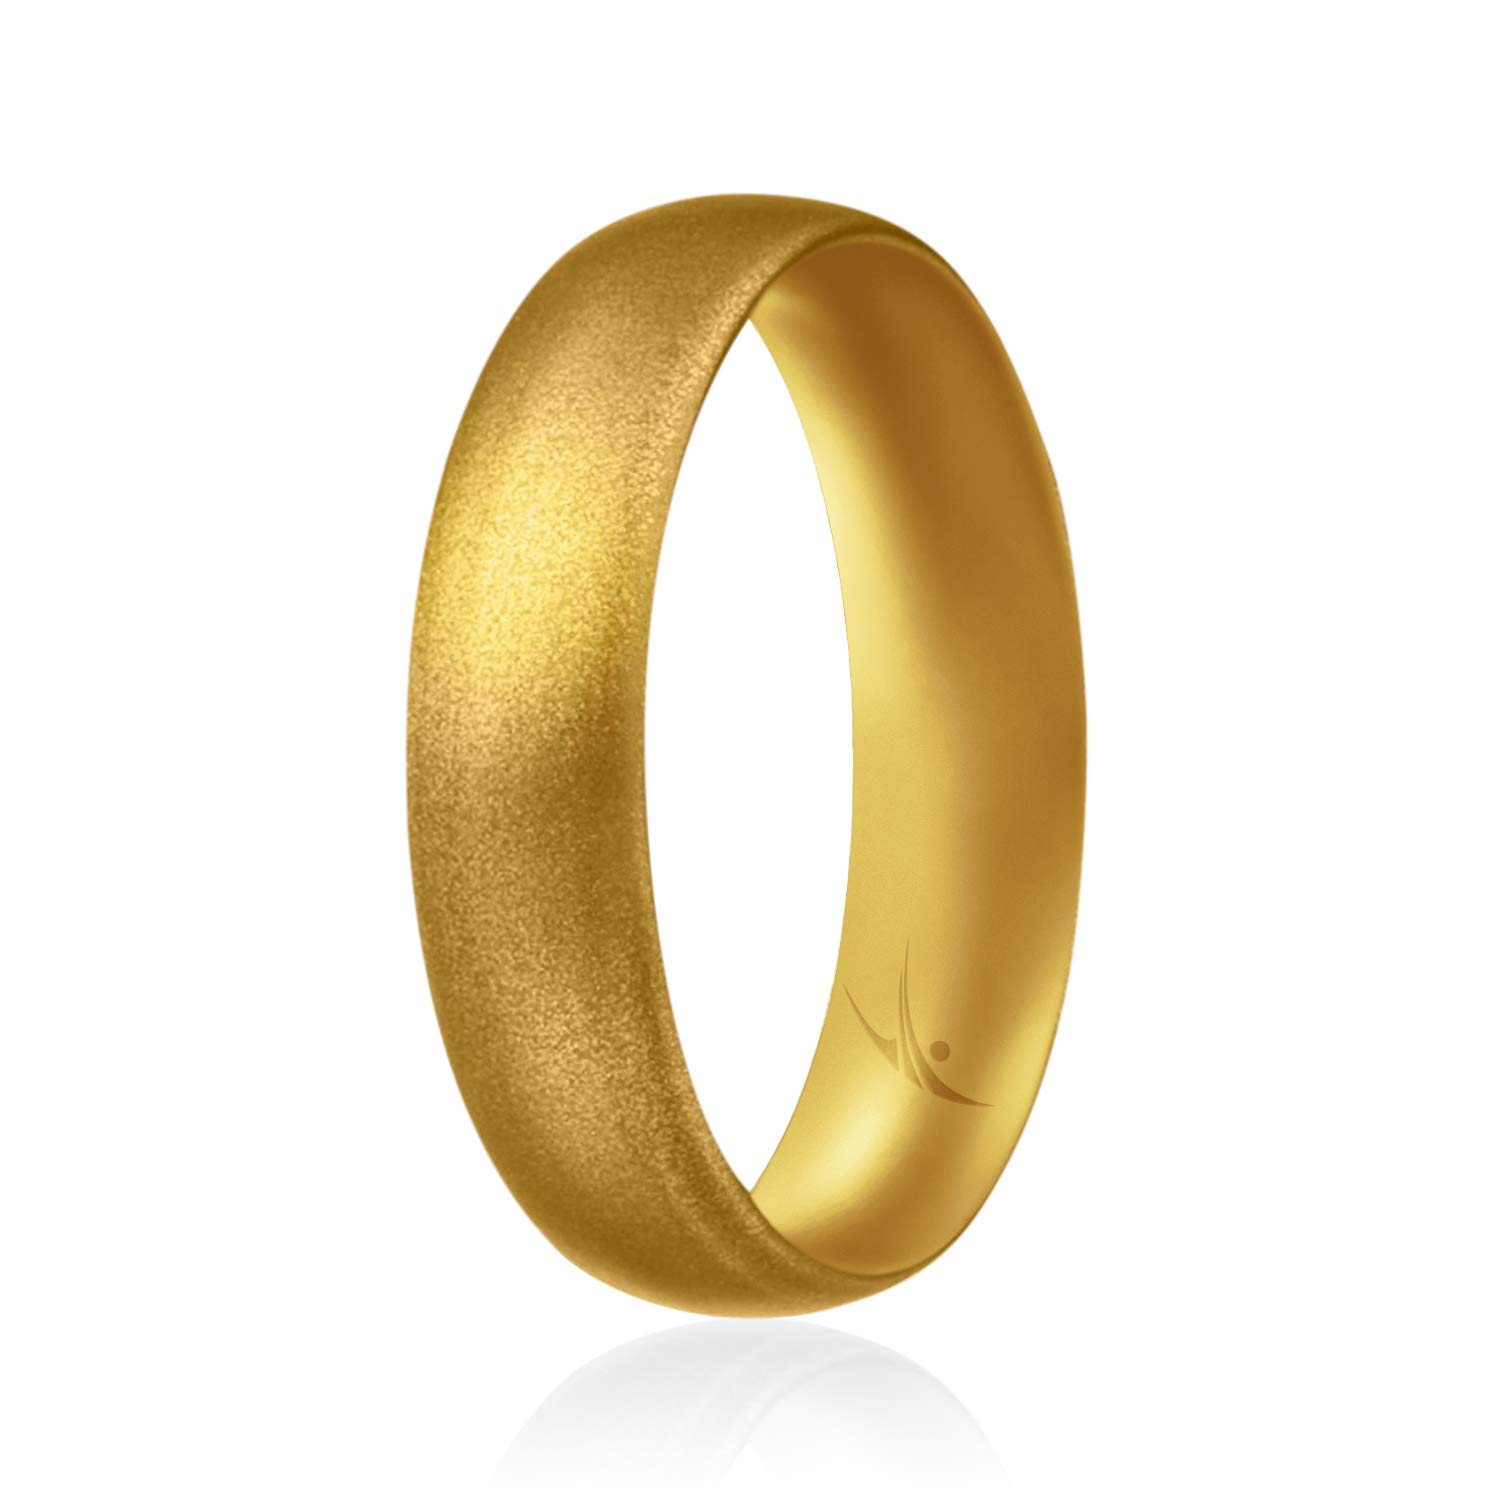 ROQ Silicone Wedding Ring for Women Thin Affordable 6mm Metallic Silicone Rubber Wedding Bands Comfort Fit Singles & 4 Packs - Rose Gold Silver Gold Platinum Copper Bronze Gunmetal